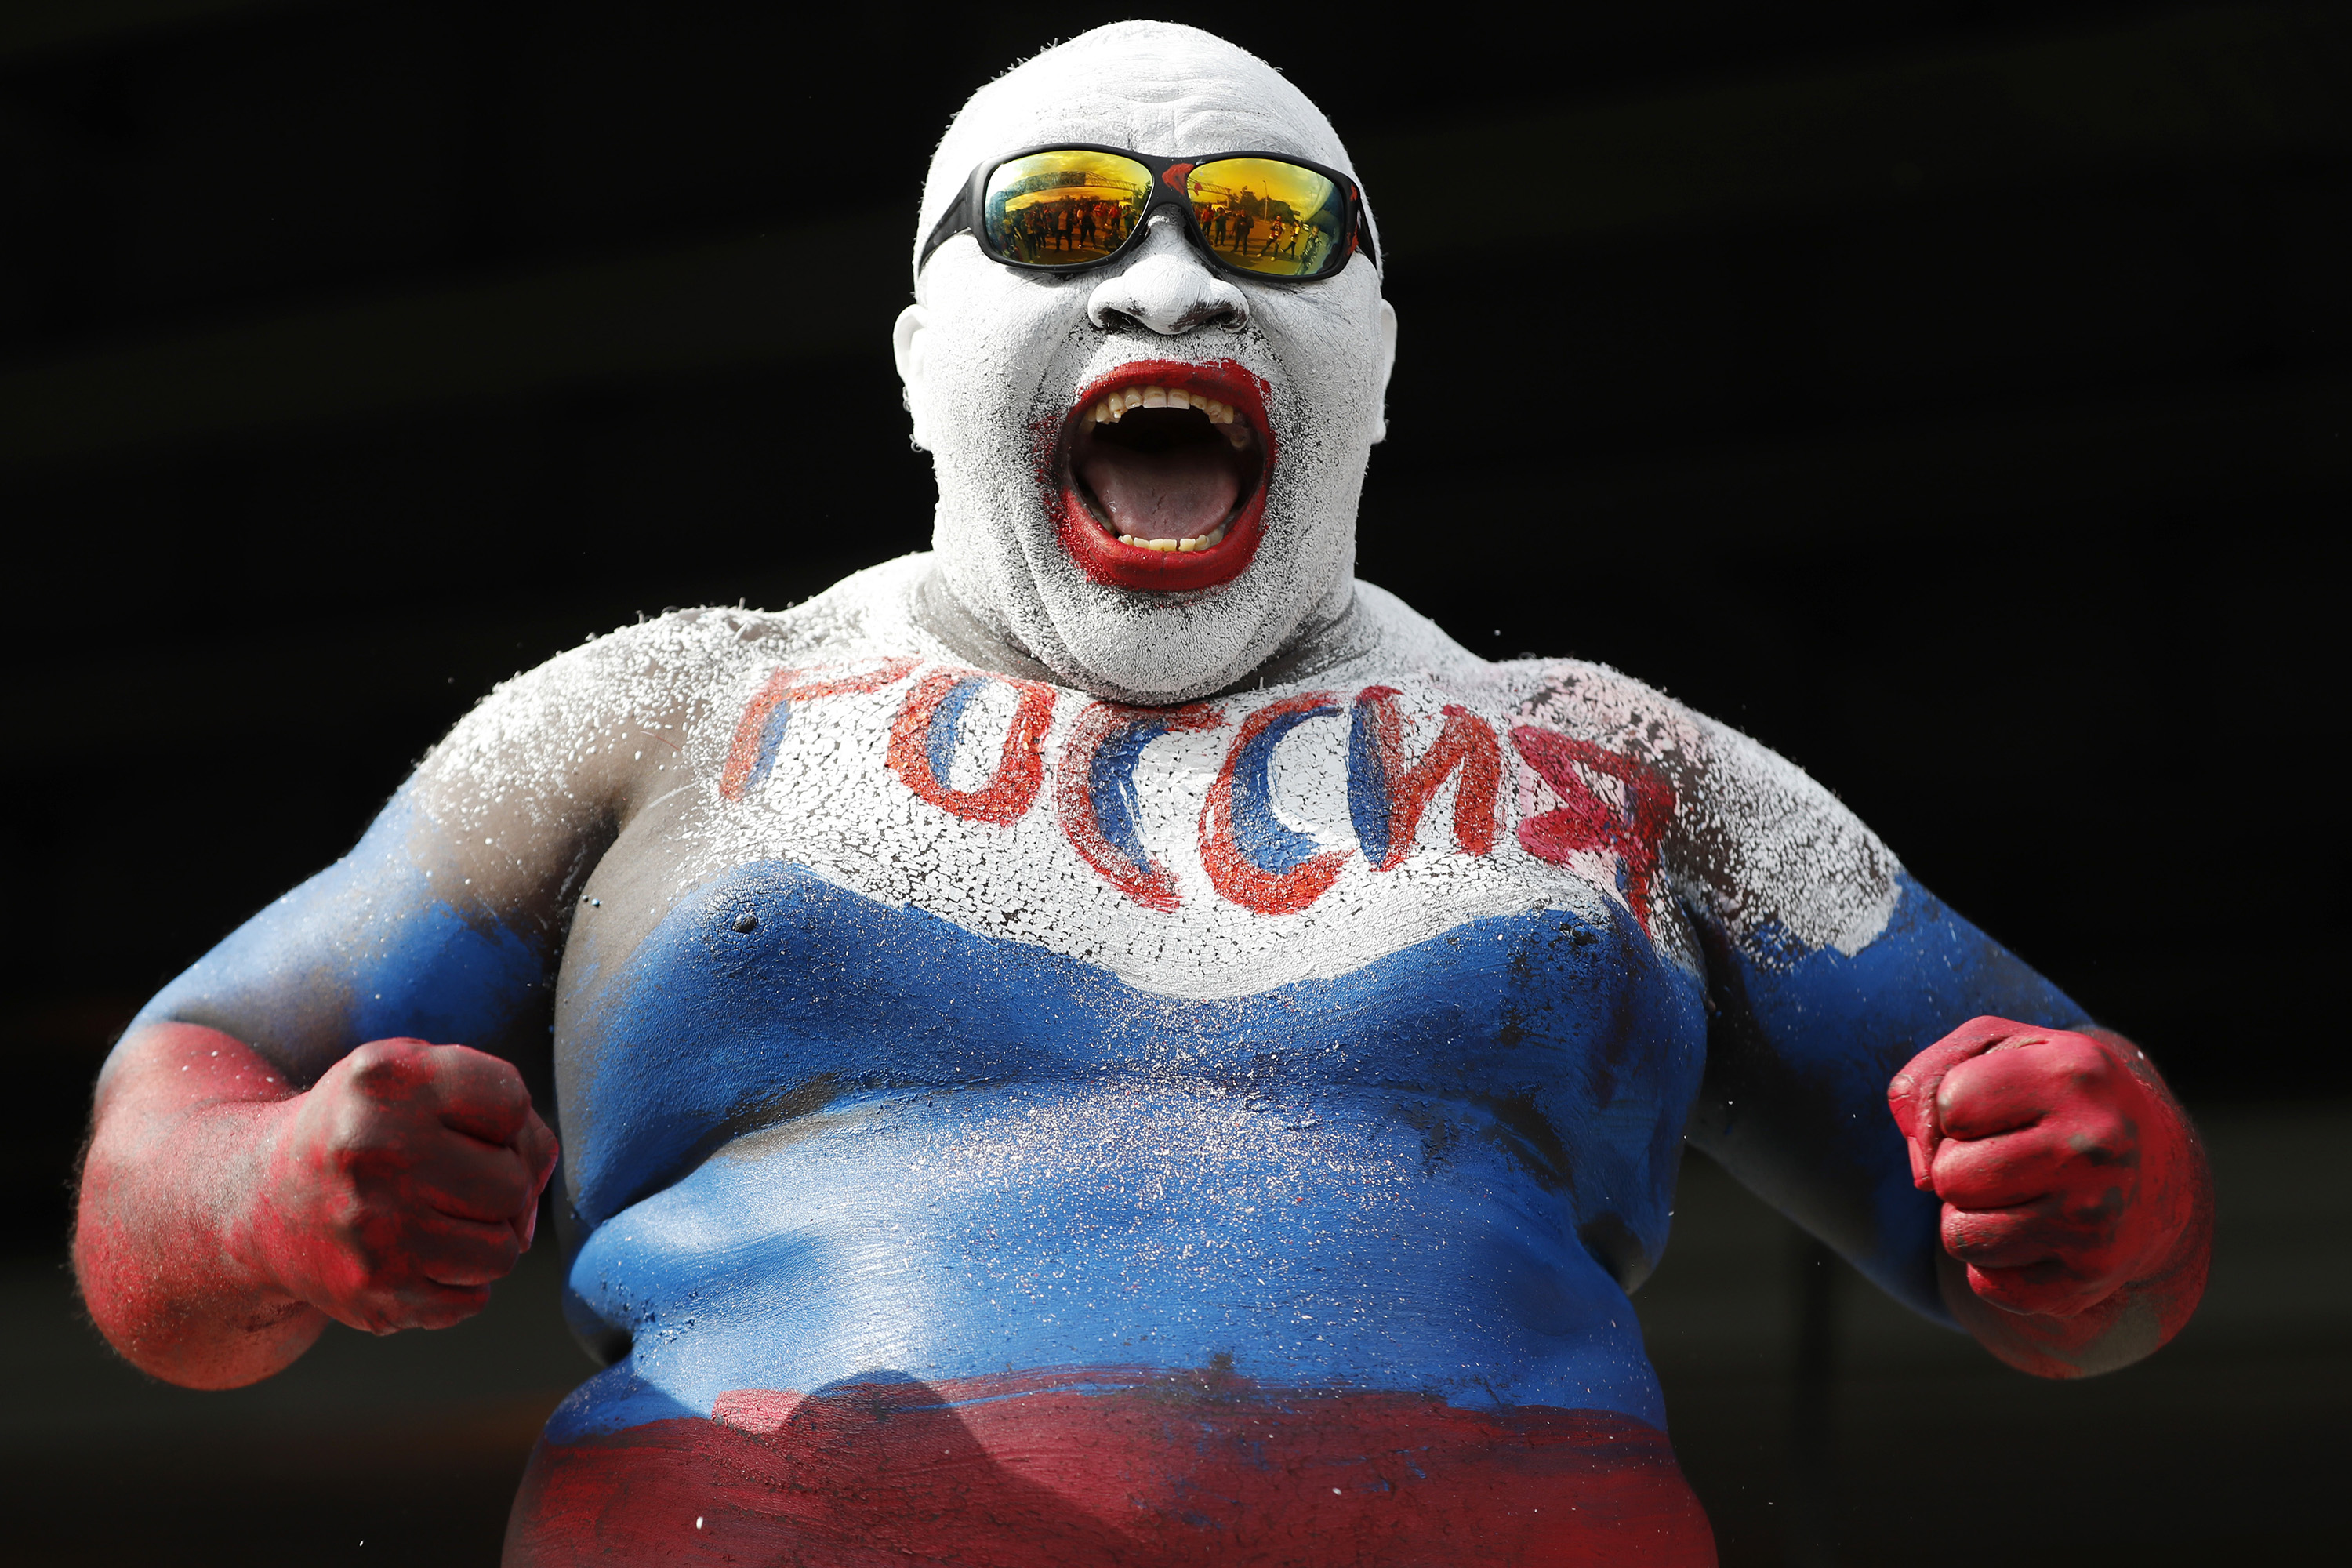 <p>Rigobert Youmbi from Cameroon strikes a pose wearing body paint in the Russian team's colors prior to the 2018 soccer World Cup opening match between Russia and Saudi Arabia at the Luzhniki Stadium in Moscow, Russia. </p>